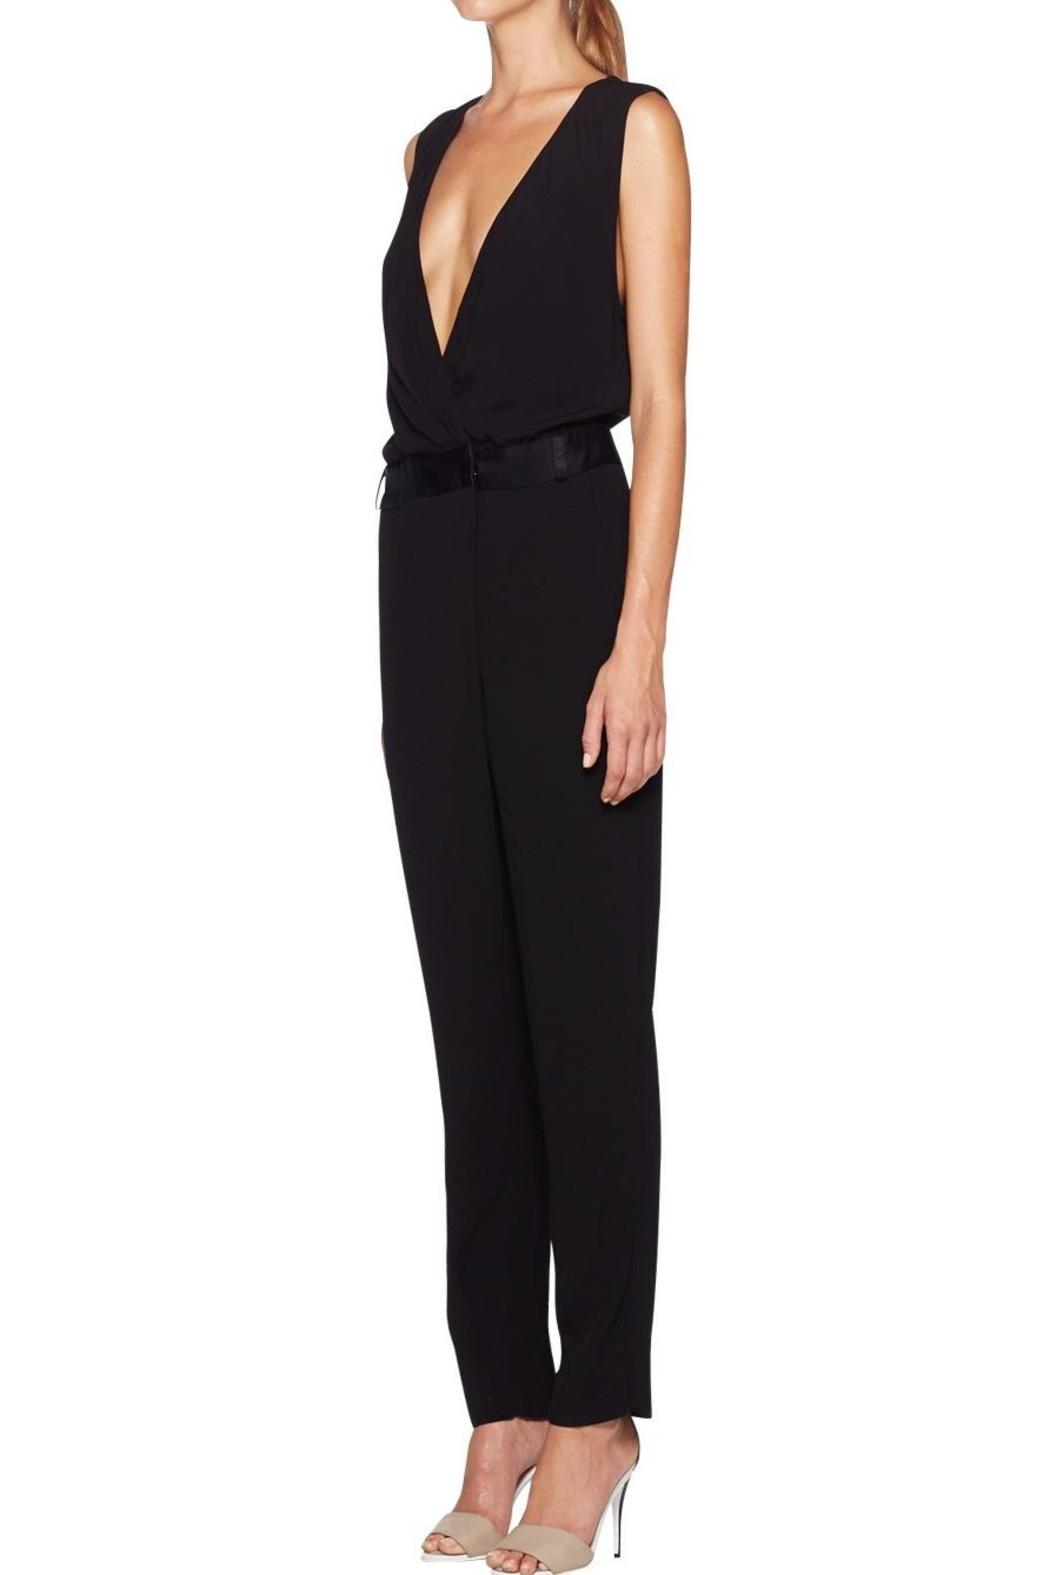 Shop Bisou Bisou Women's Pants - Jumpsuits & Rompers at up to 70% off! Get the lowest price on your favorite brands at Poshmark. Poshmark makes shopping fun, affordable & easy!